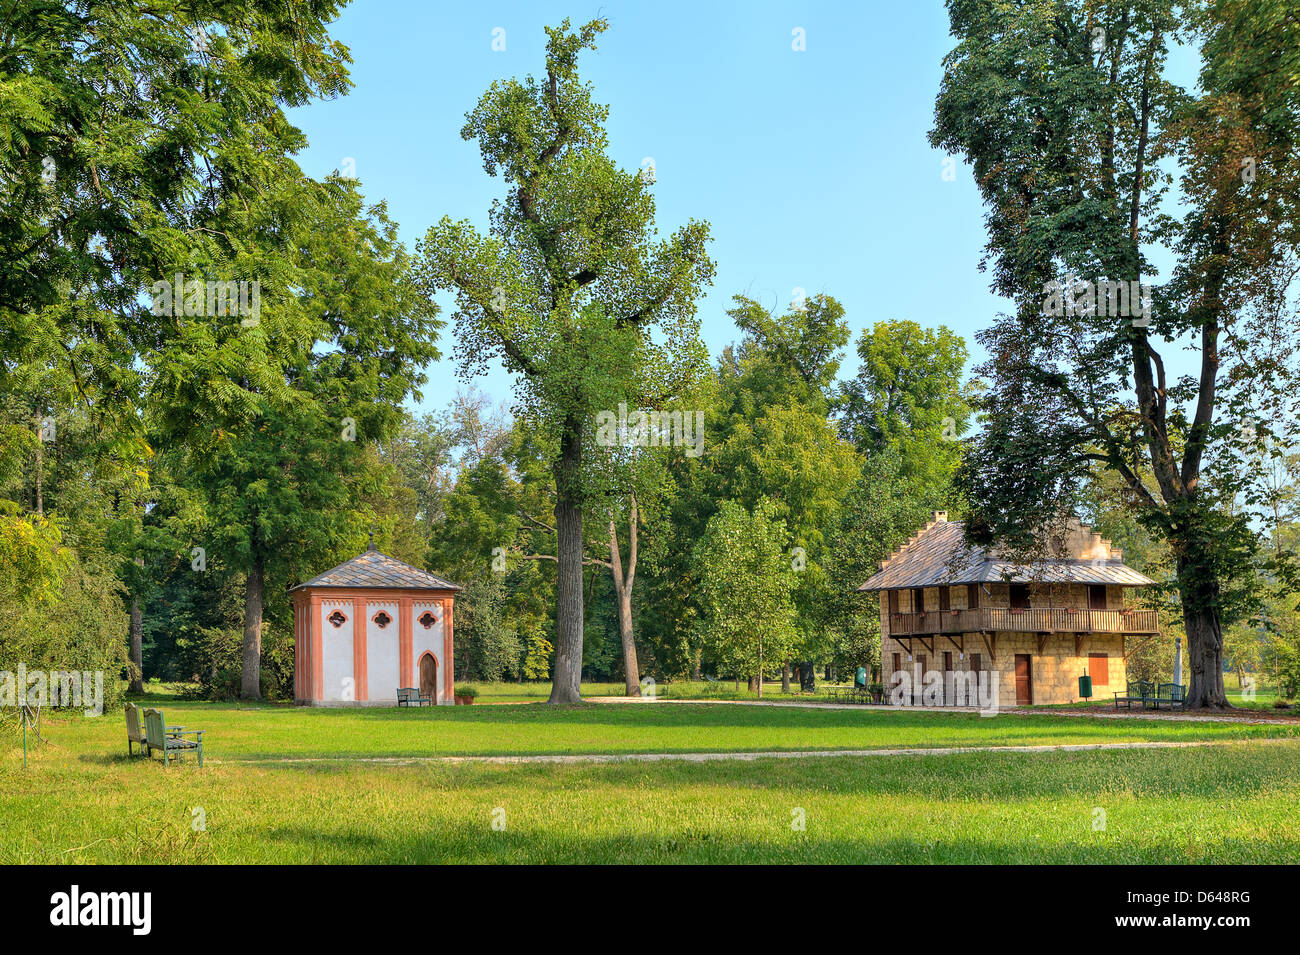 Small guest houses on green lawn among trees at Racconigi - royal park in Piedmont, Northern Italy. - Stock Image